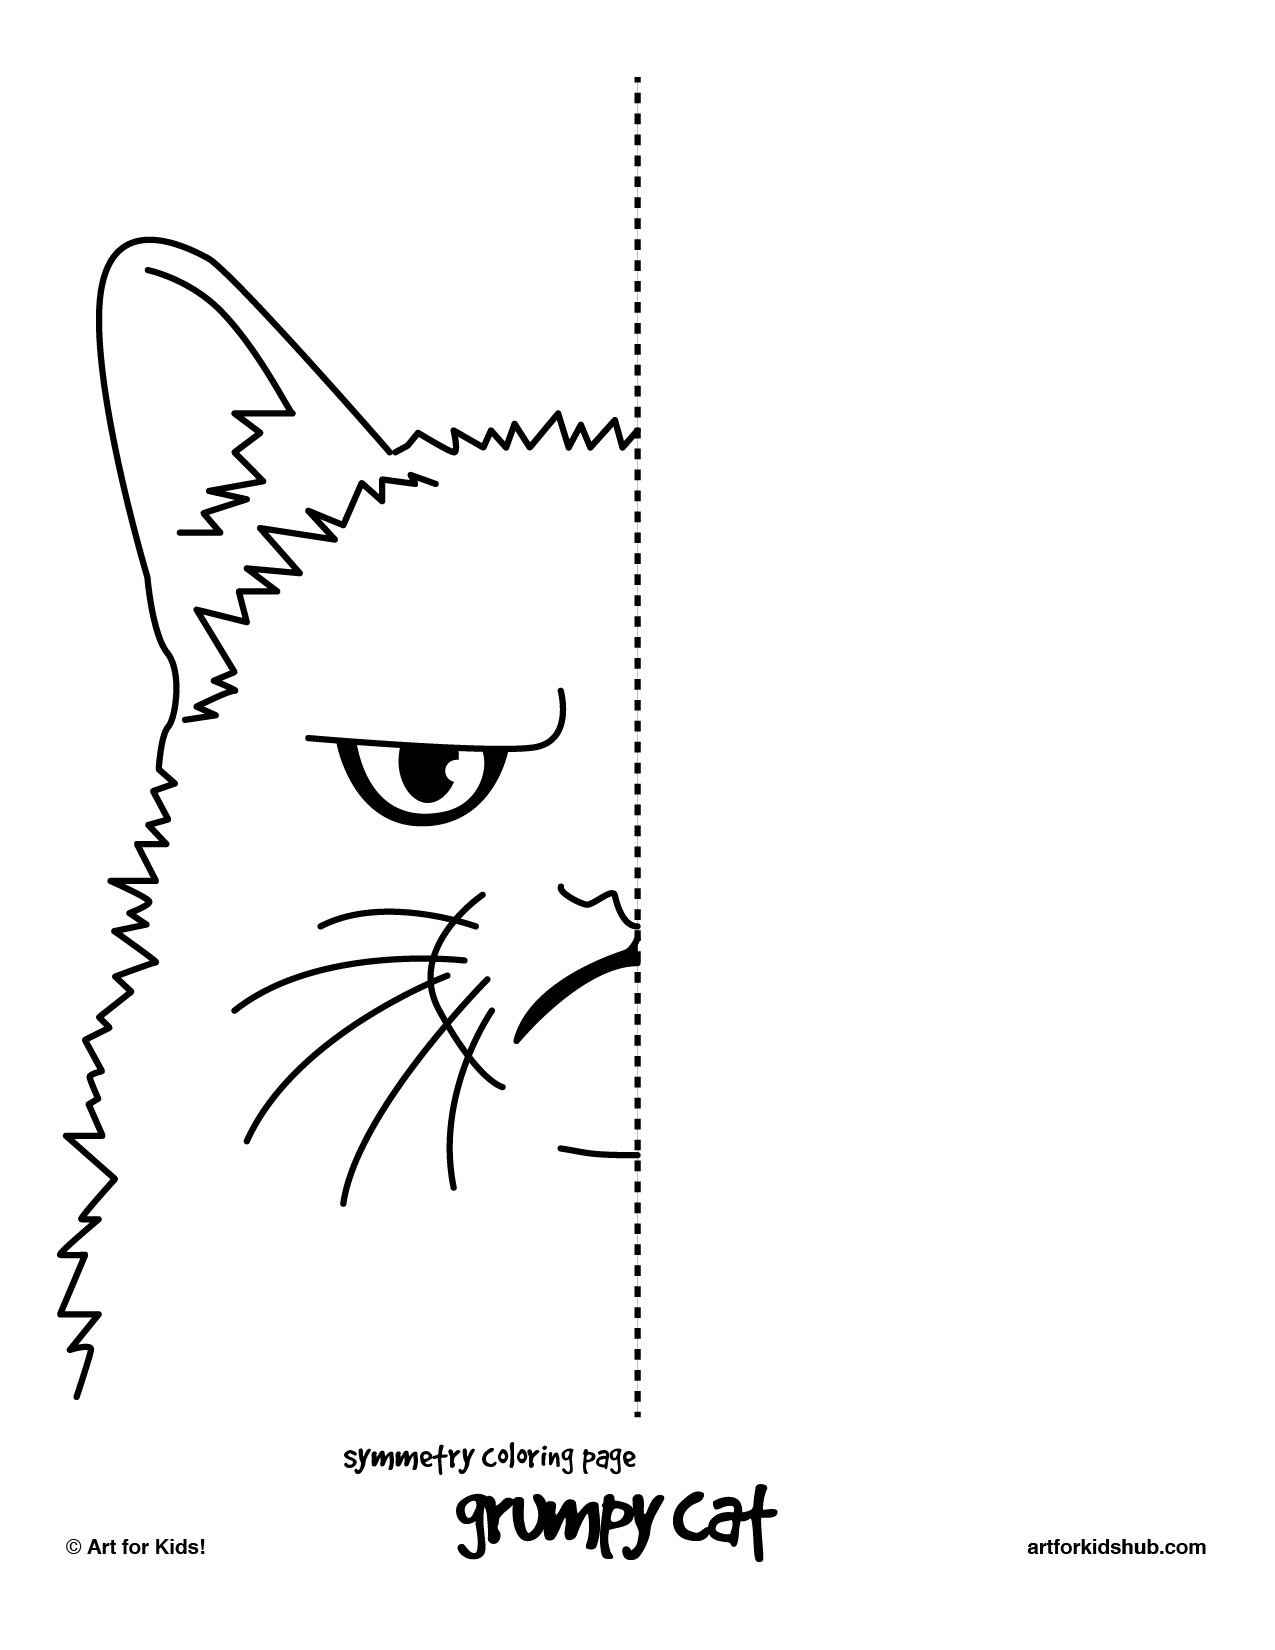 Symmetry Grumpy 171 Funnycrafts Symmetry Coloring Pages